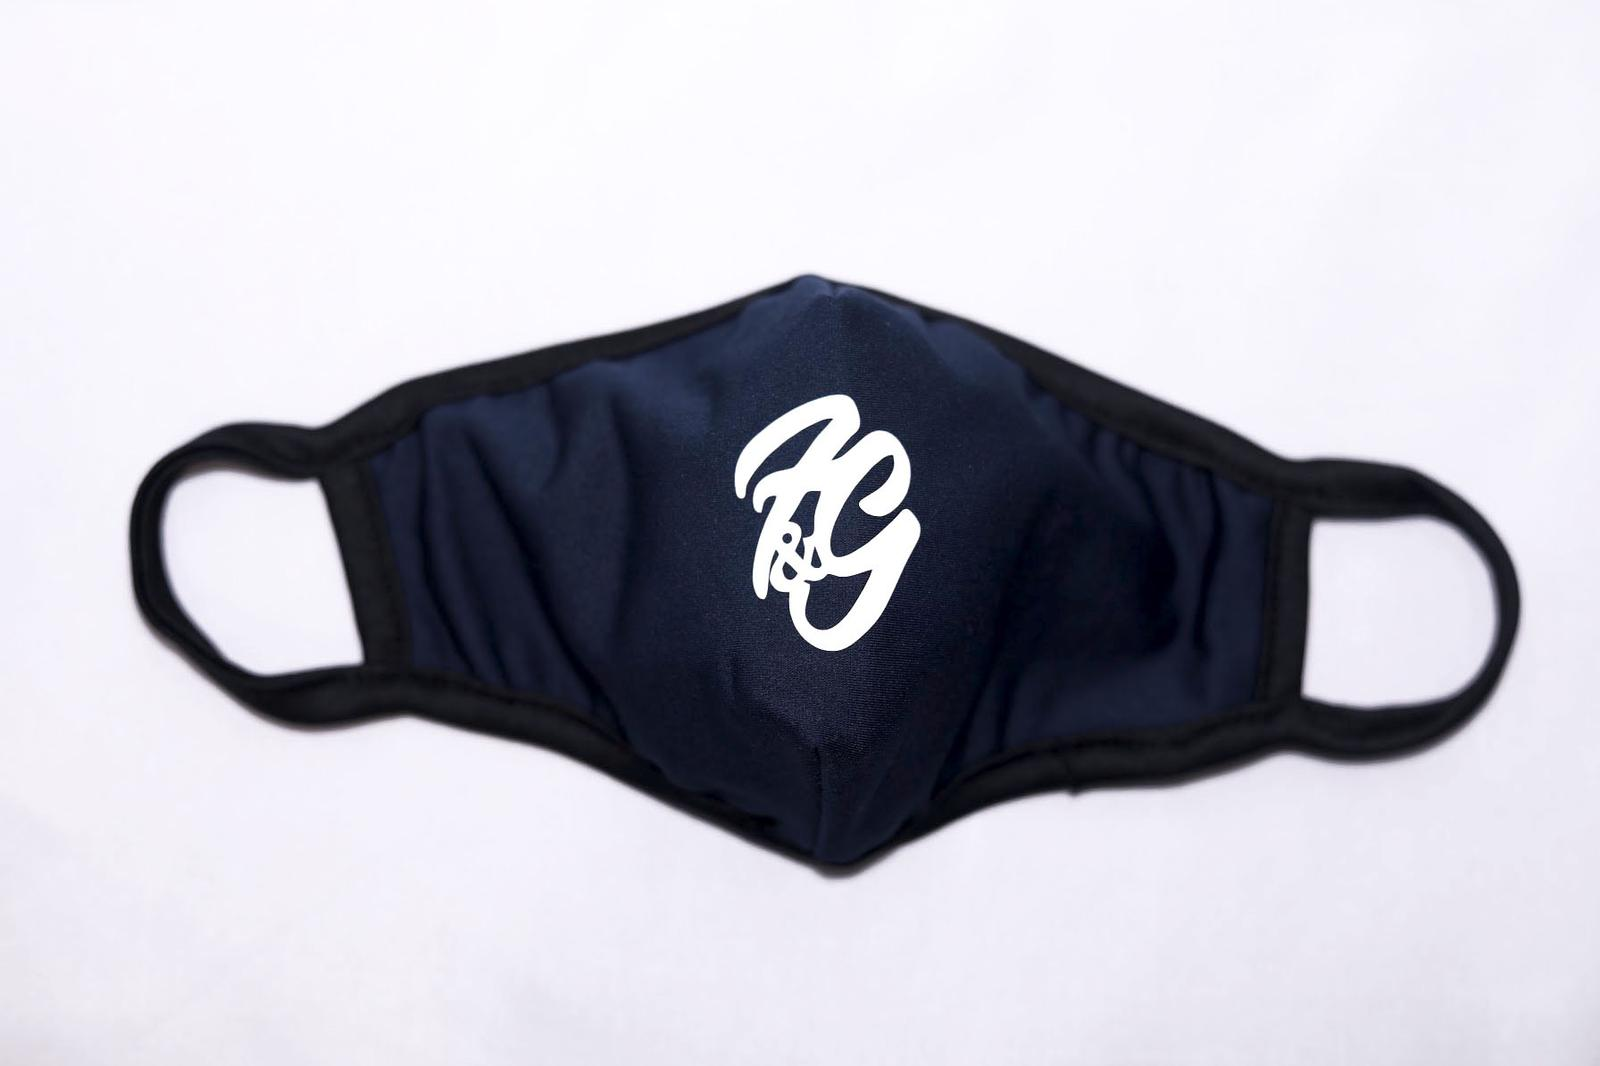 Fun and Games Face Mask Navy Blue